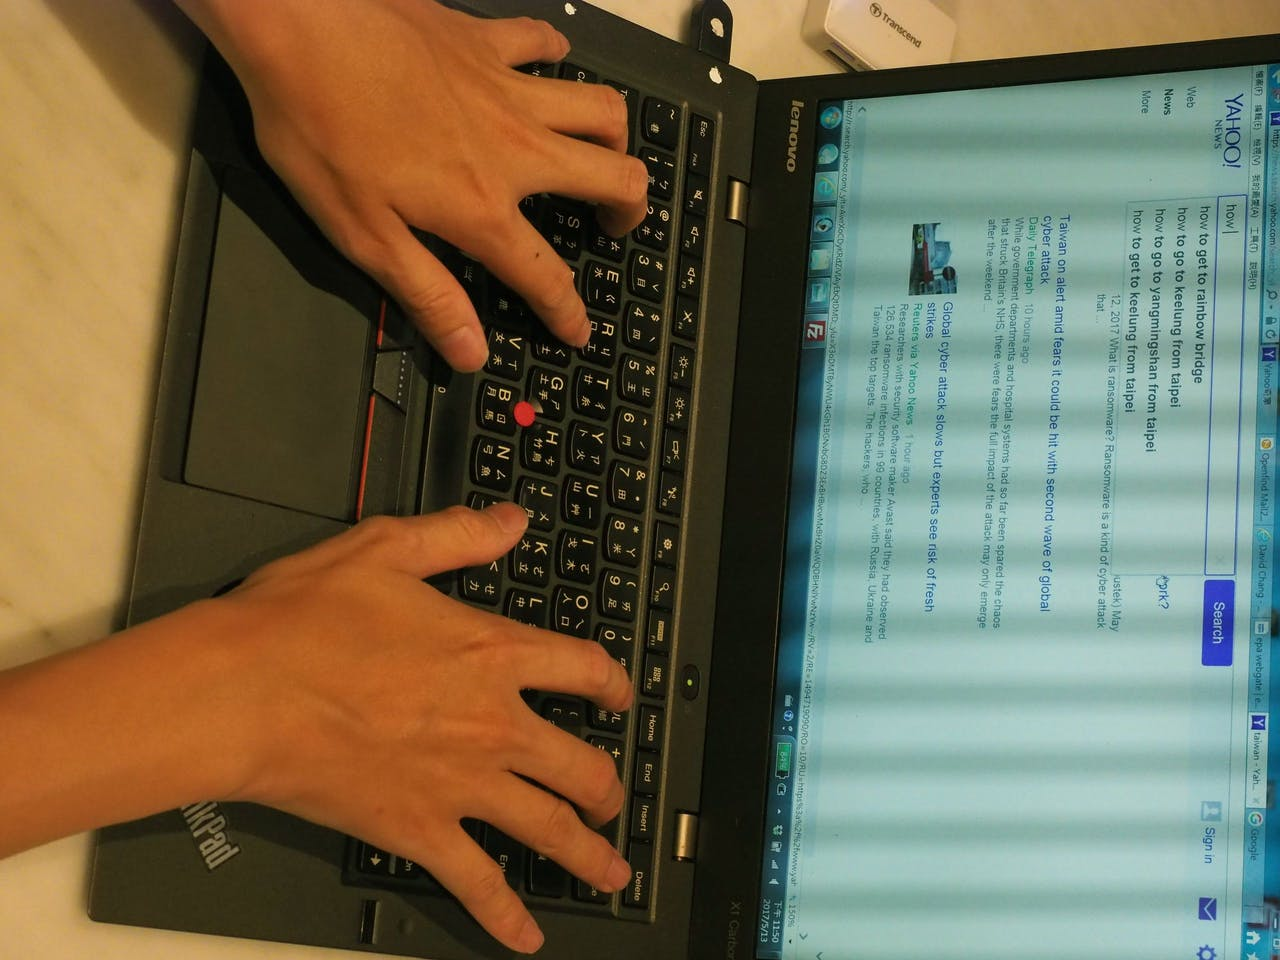 2017-05-13 22:18:16 epa05961787 A man uses his laptop computer in Taipei, Taiwan, 13 May 2017. According to news reports, a 'Ransomware' cyber attack has hit computers in 99 countries with the attacker demanding 300 US dollars in Bitcoin to decrypt the files. This is the second such attack to hit Taiwan since February but the largest ever worldwide. When it hit Taiwan and a few other countries in February, computer security experts called it Denial of Service (DDoS) attack. EPA/DAVID CHANG